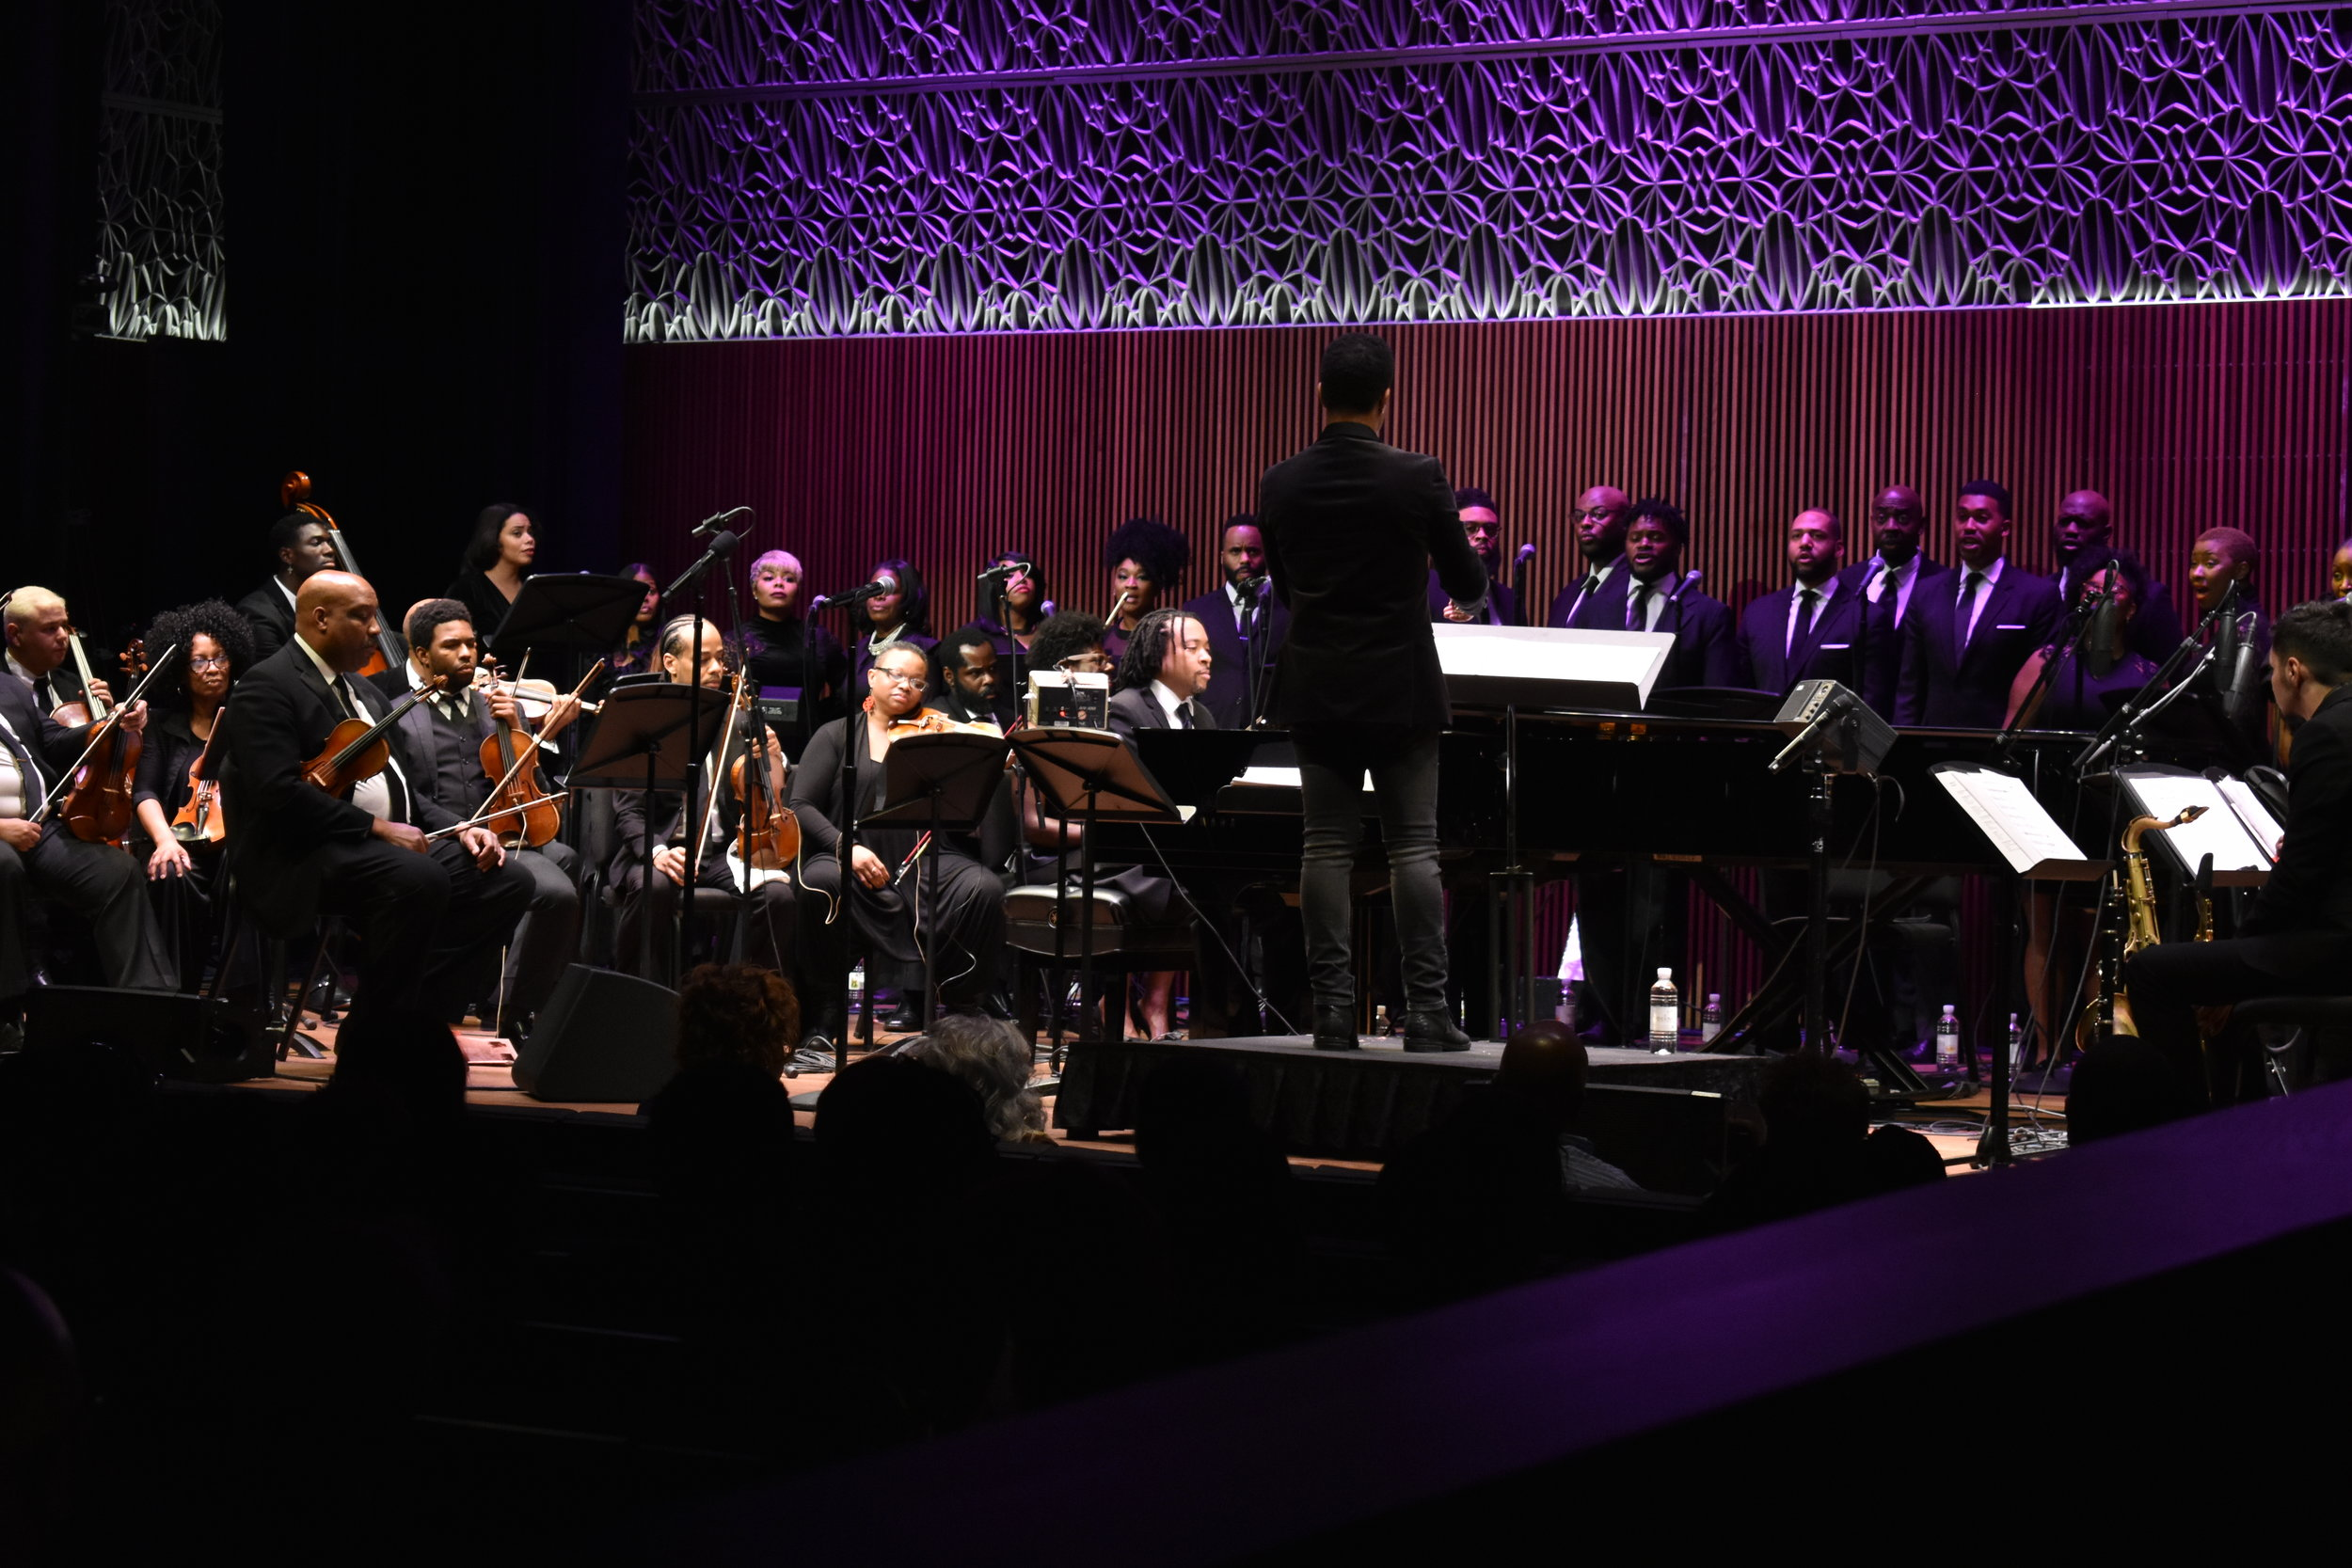 """Darin Atwater's Soulful Symphony performs """"MLK 50: Requiem for a King"""" at the National Museum of African American History and Culture in Washington, Friday, April 6, 2018. (Lindsey Leake/American University)"""